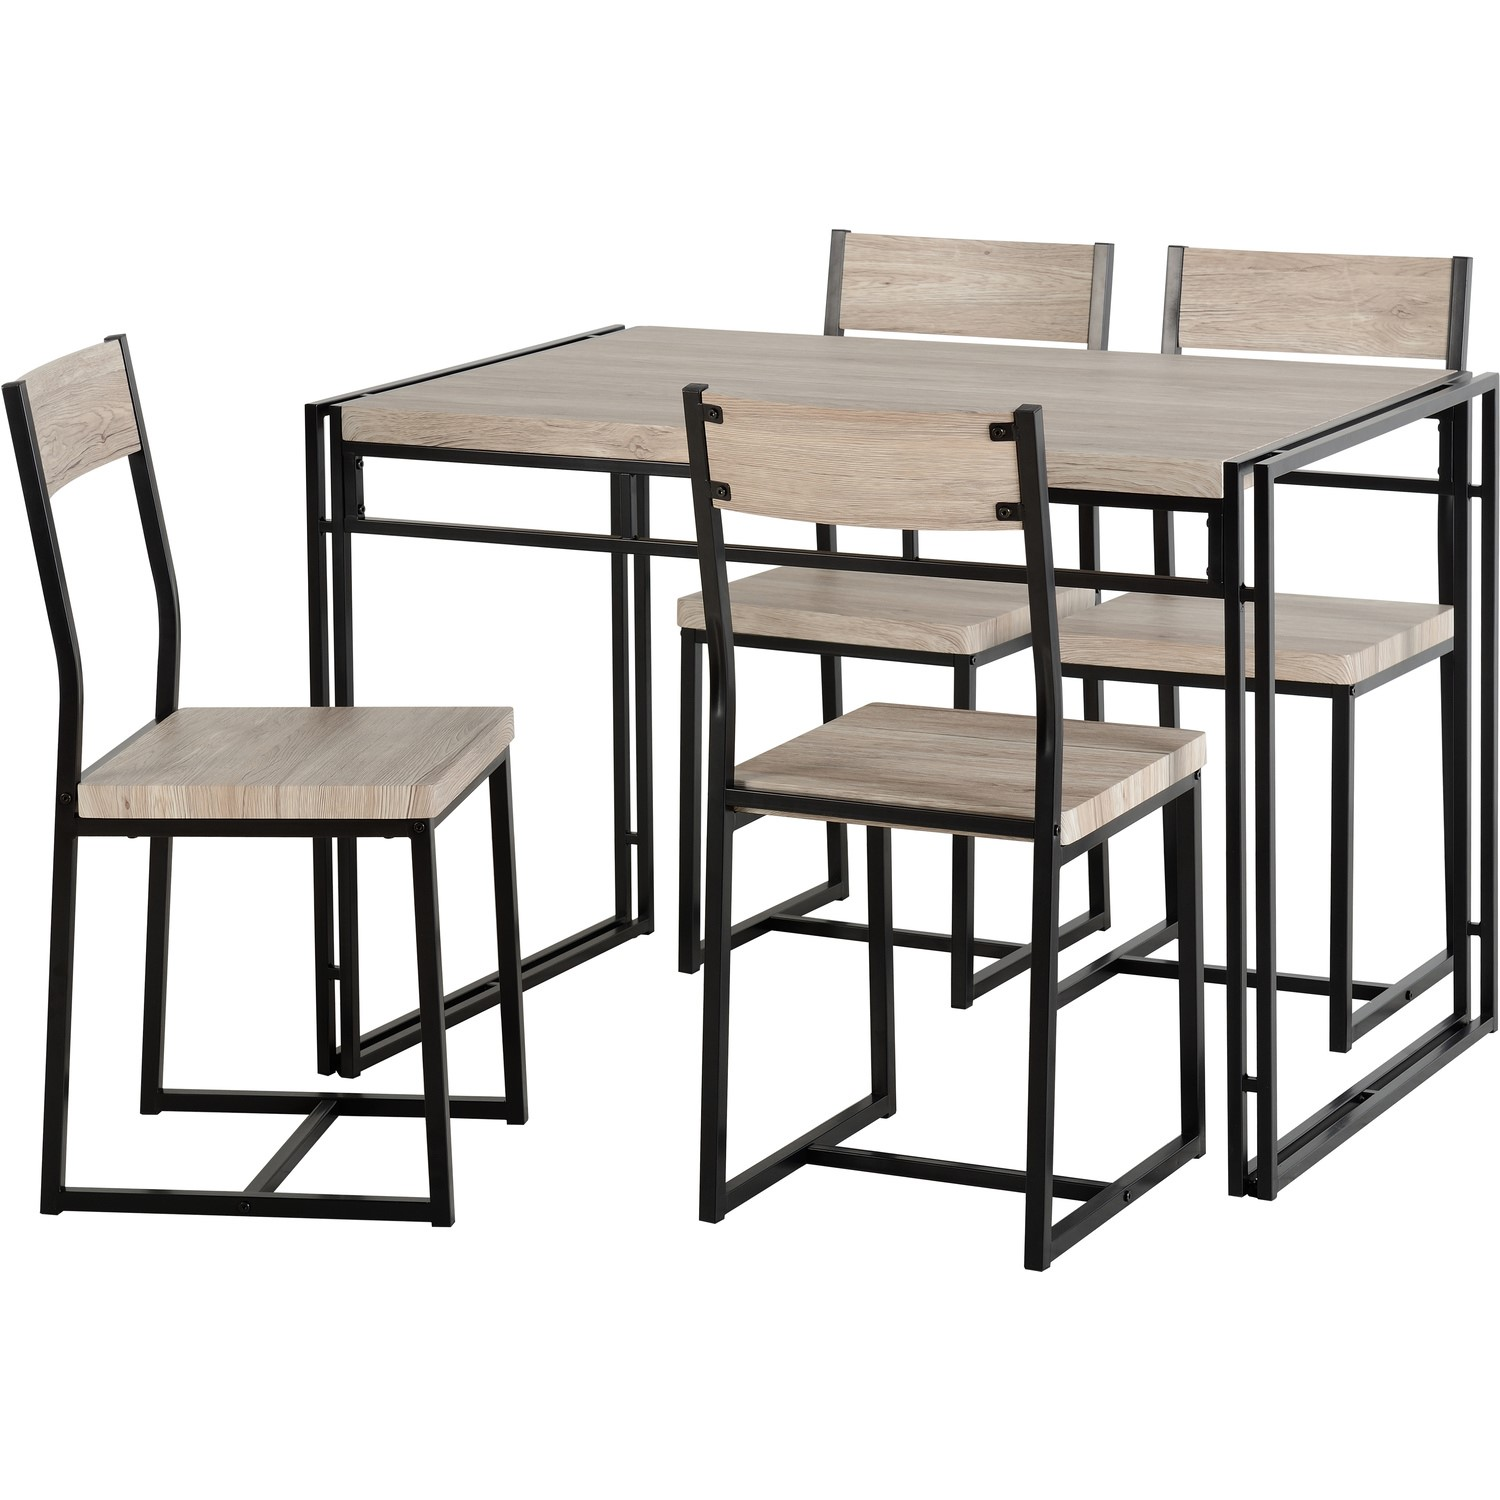 Warwick Dining Set Oak Effect And Metal Dining Table 4 Chairs